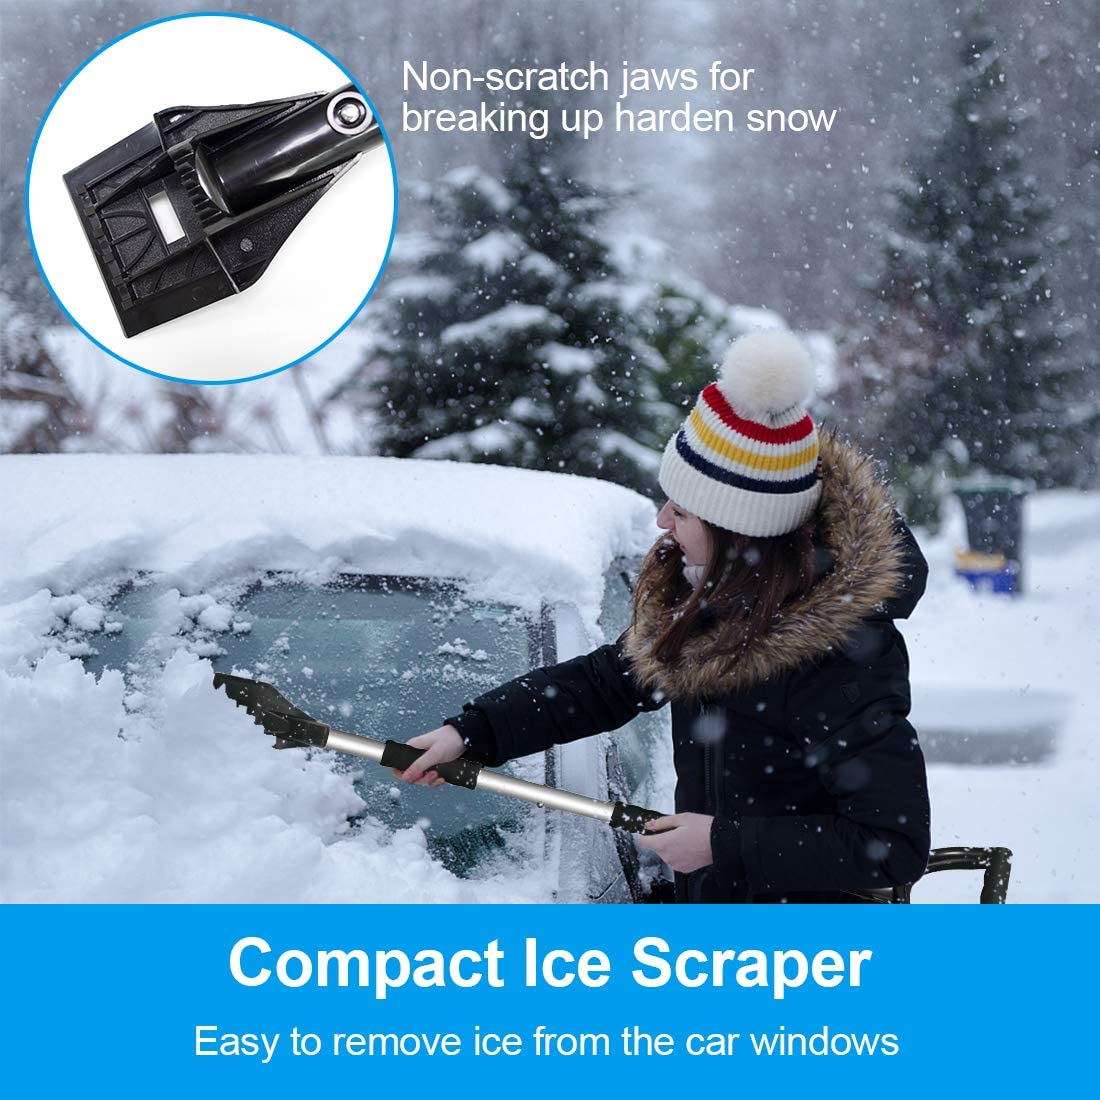 Portable Detachable Emergency Snow Removal Set for Car Ice Scraper with Extendable Handle Backyard 3-in-1 Snow Shovel Kit Snow Shovel Trucks Camping Outdoor Activities Snow Rotary Brush